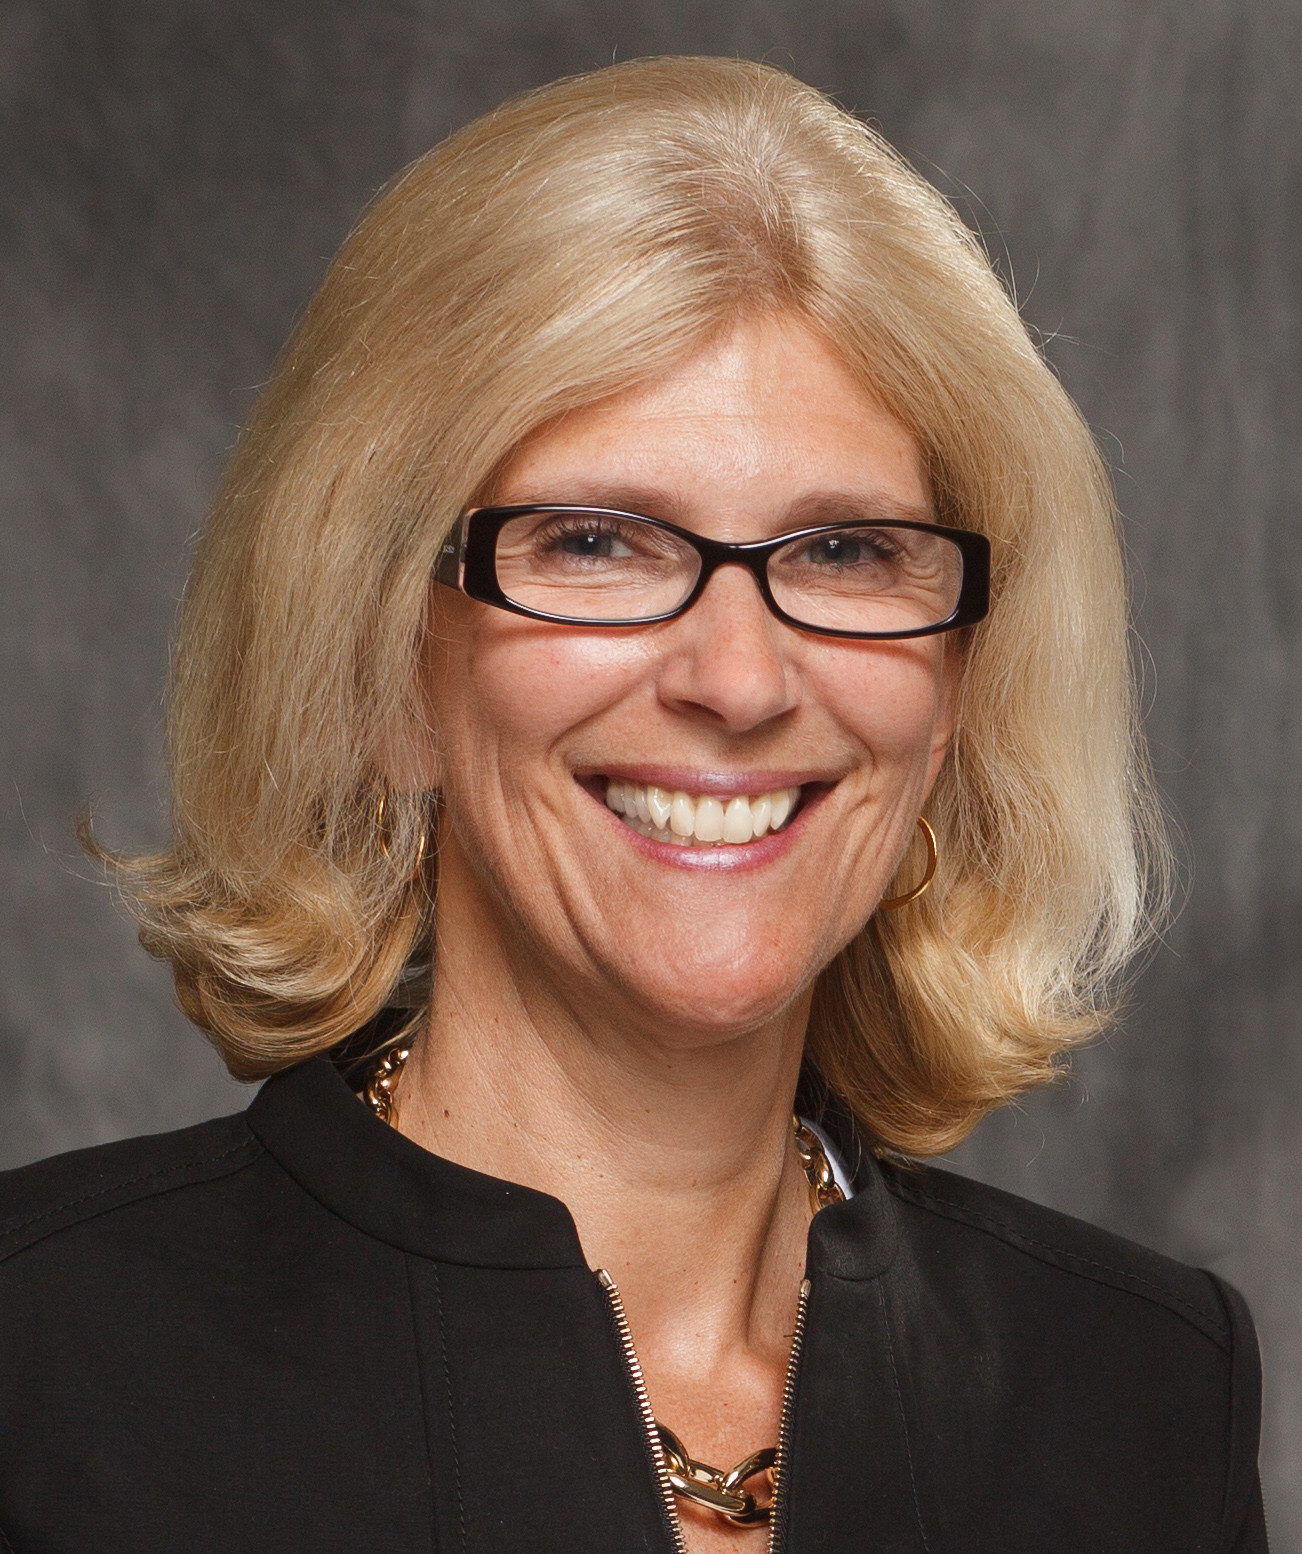 Cathy Jacobson, CEO Froedtert Health